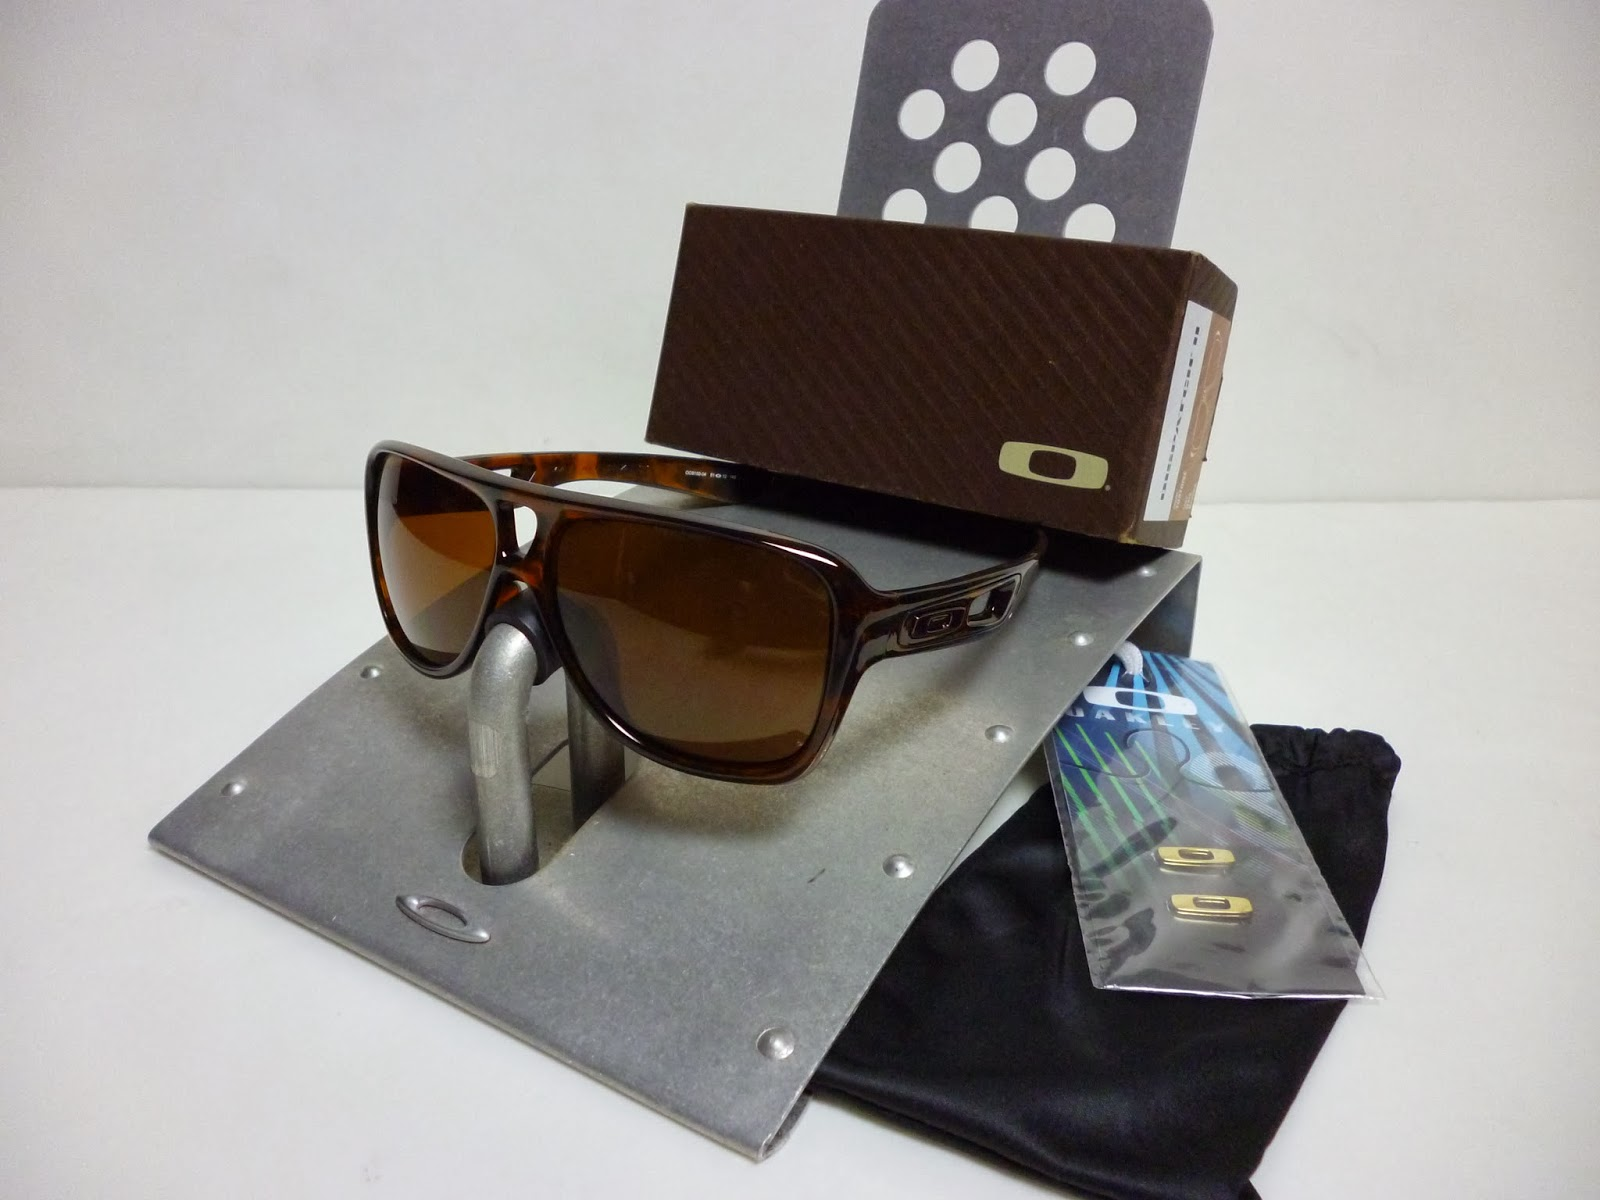 6167ef1717 Sam s Oakley Collection from SG Singapore  OAKLEY DISPATCH 2 ...